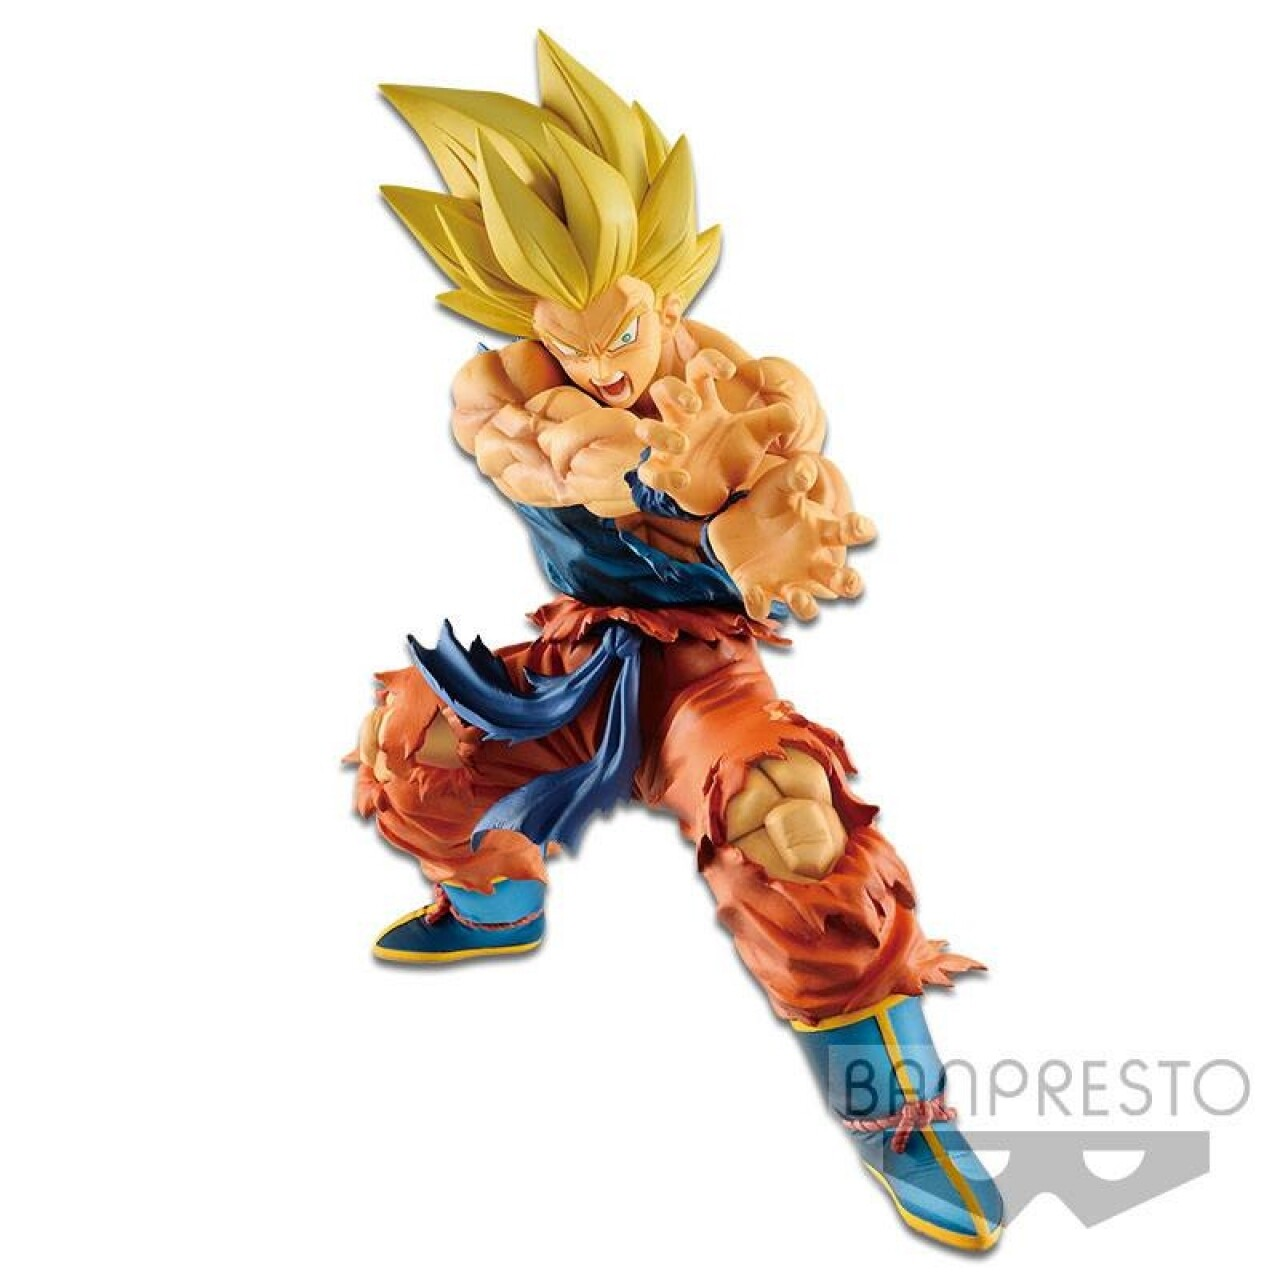 Banpresto DB Legends Collab Kamehameha Son Goku